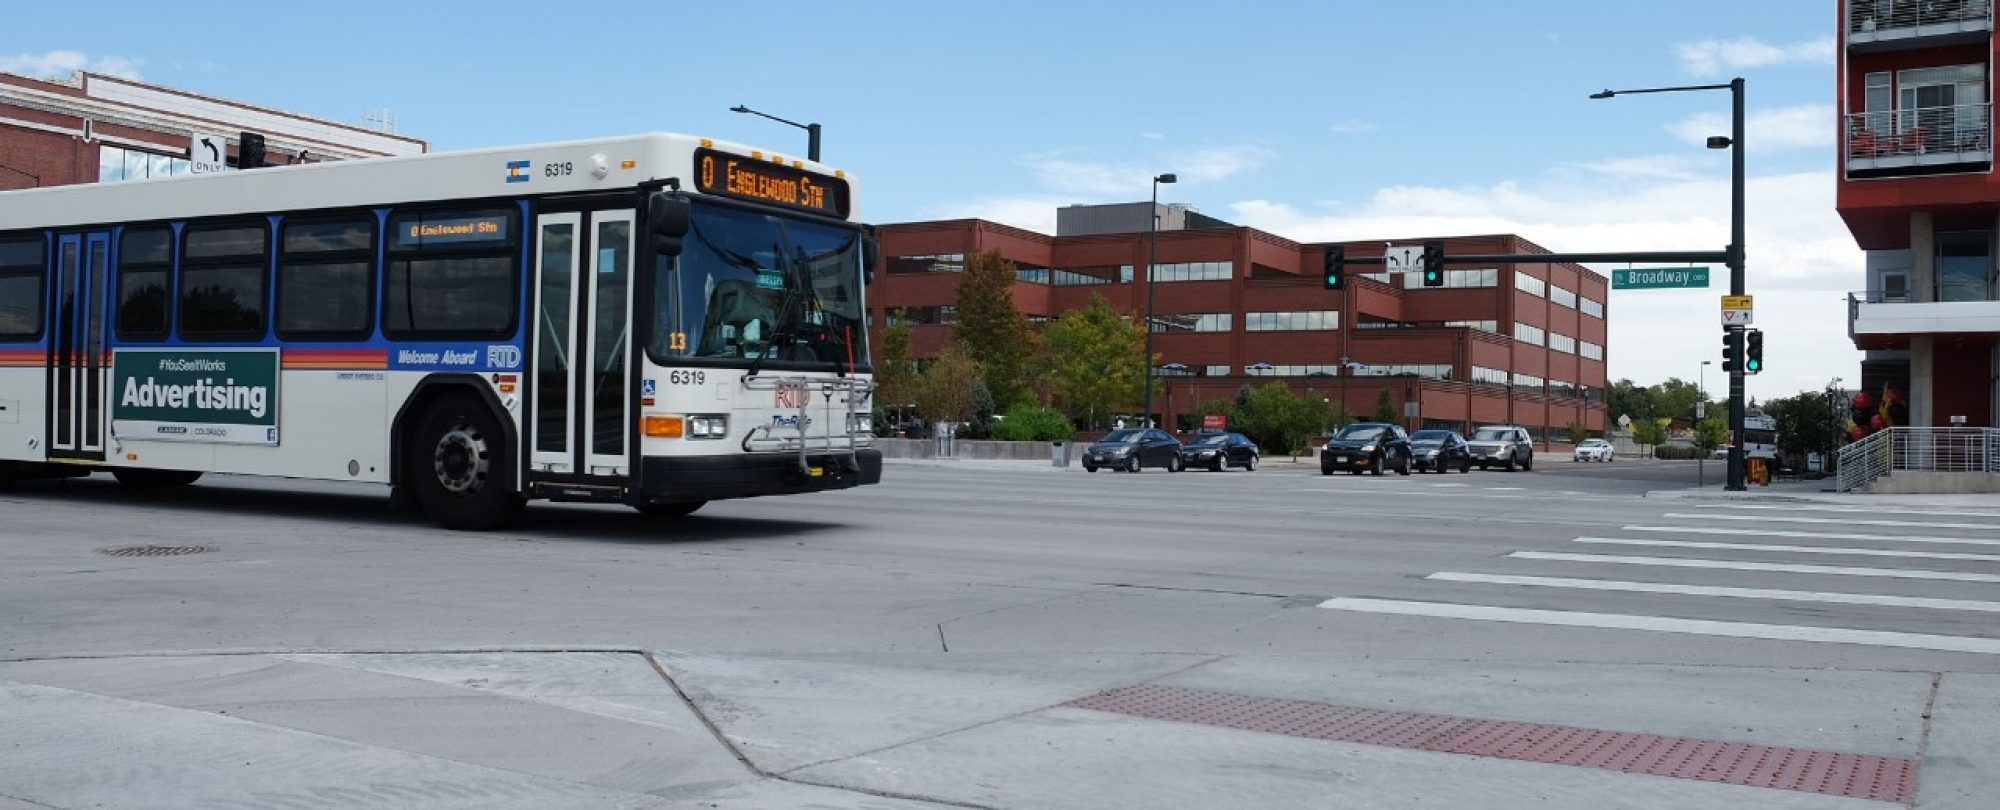 bus in intersection on South Broadway on new roadway